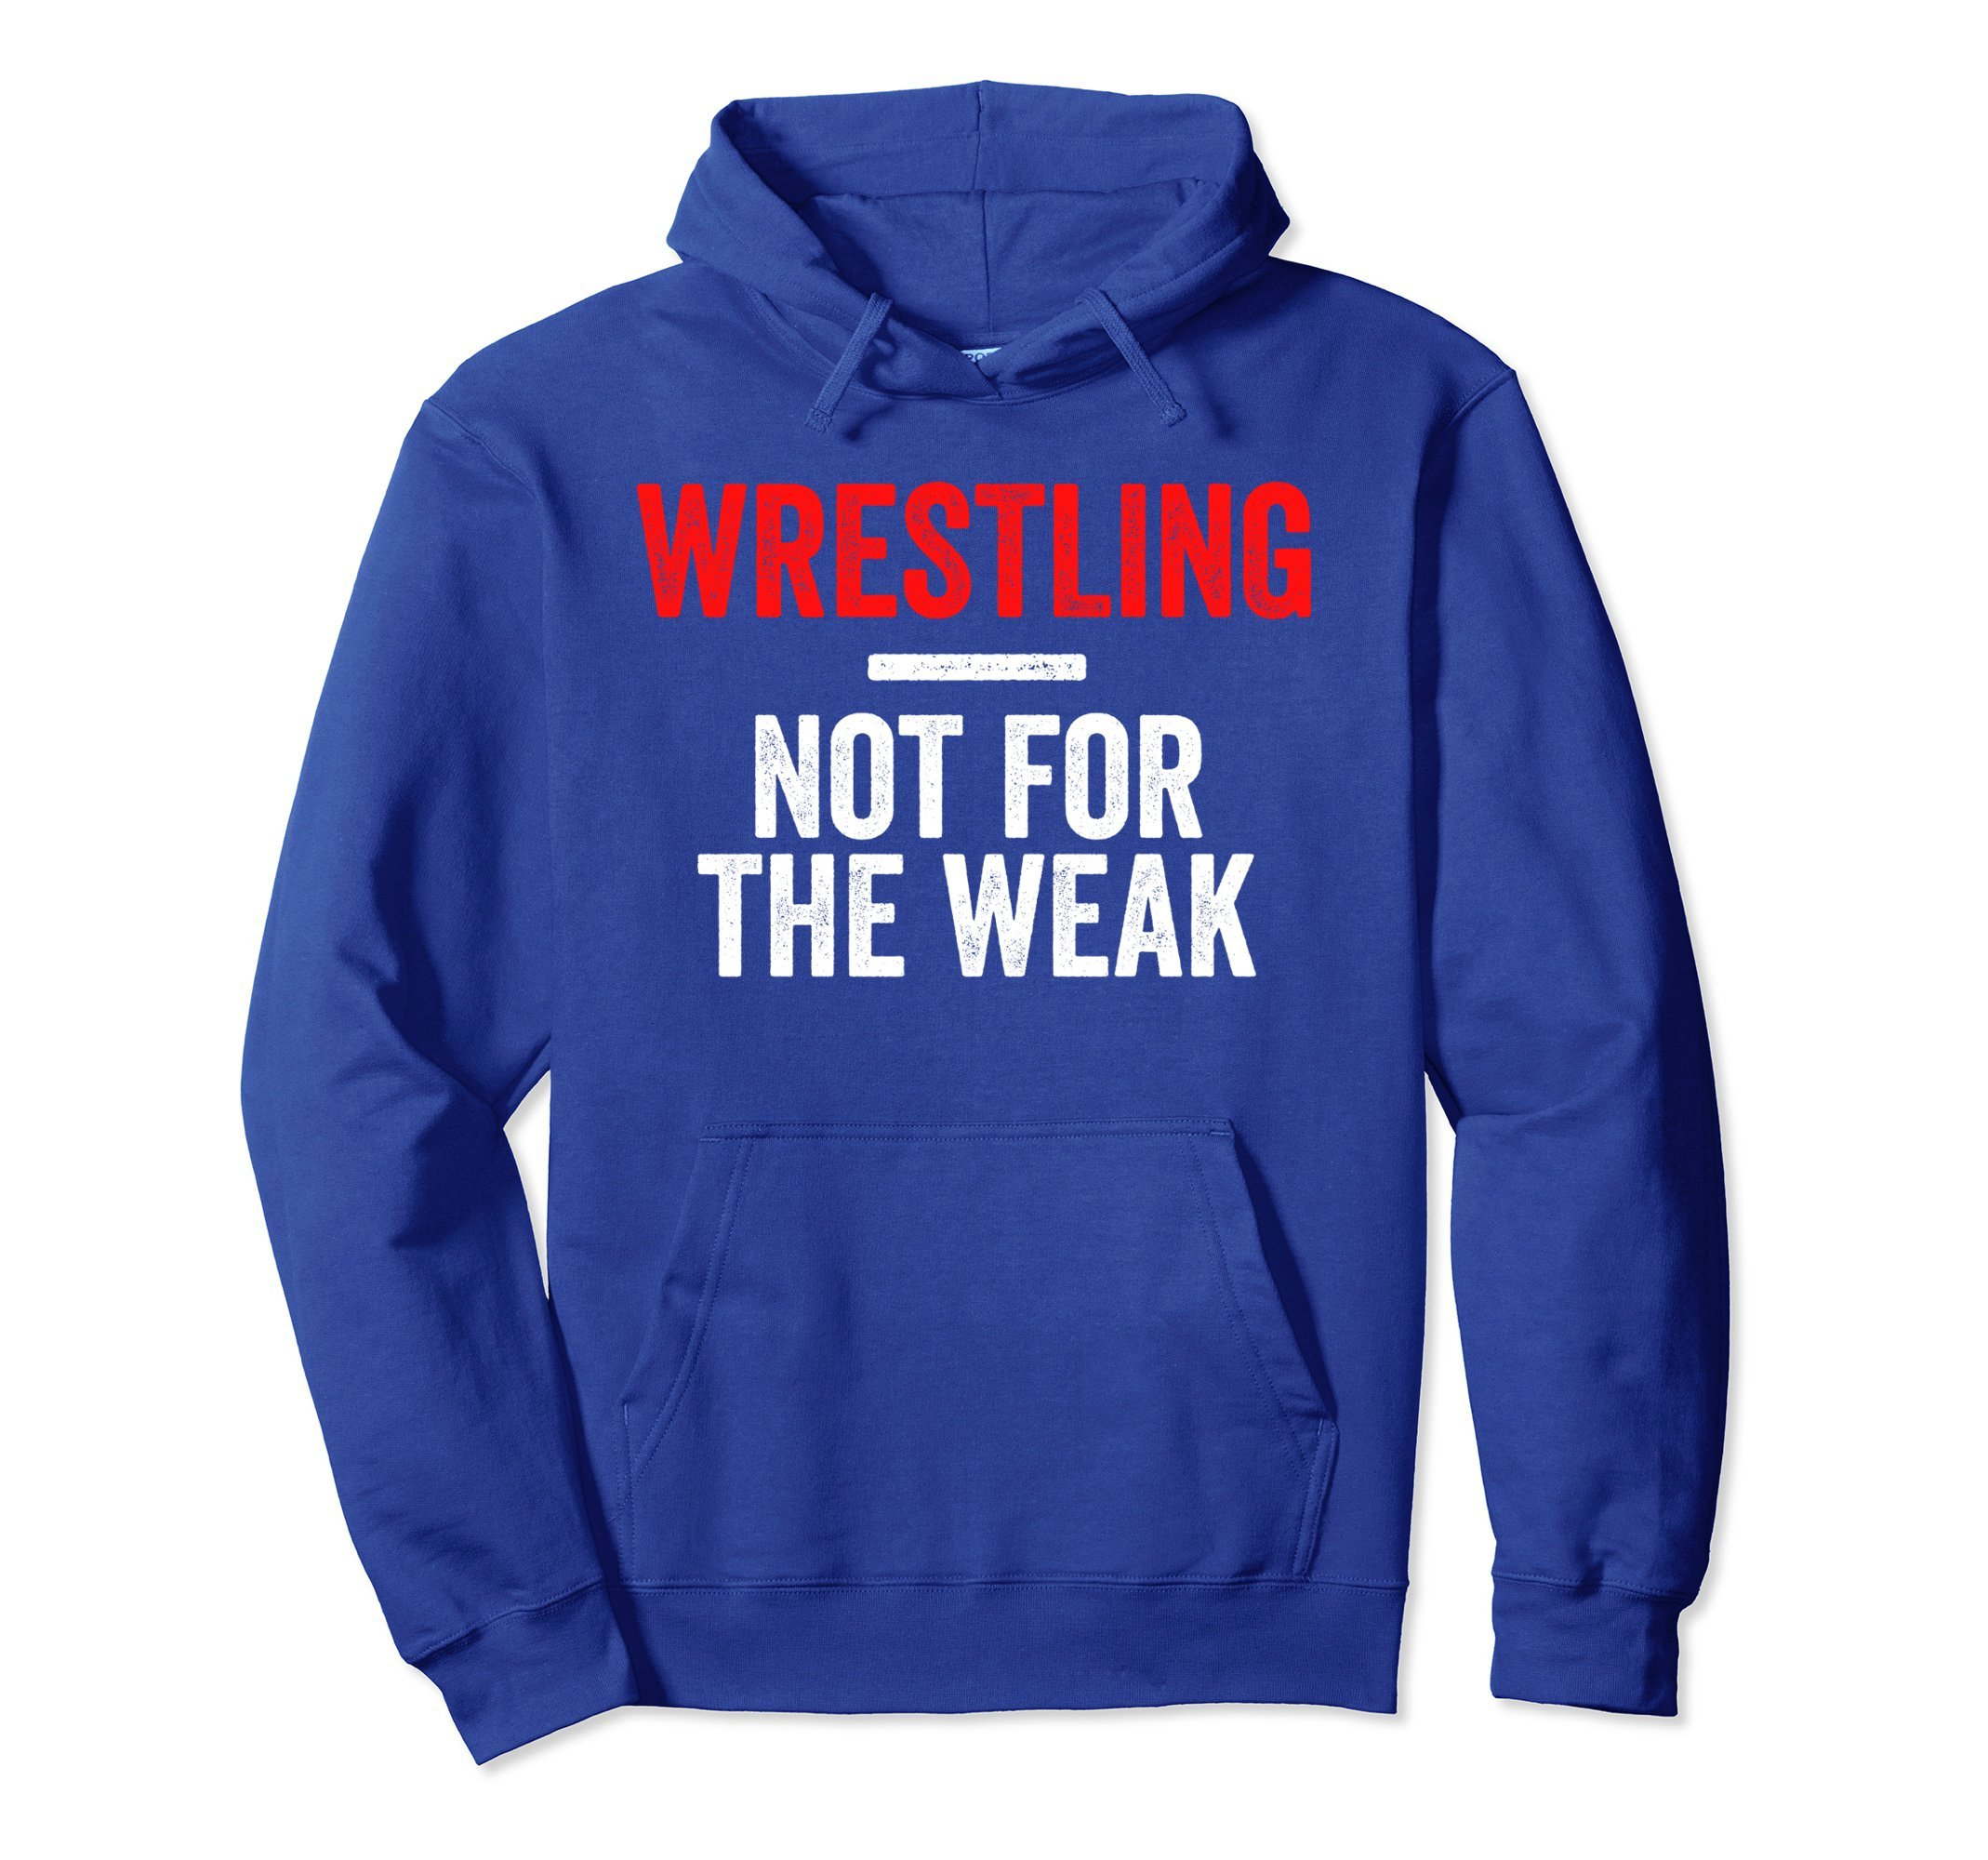 Unisex Not For The Weak Wrestling Hoodie for Wrestlers, Gift, Red Large Royal Blue